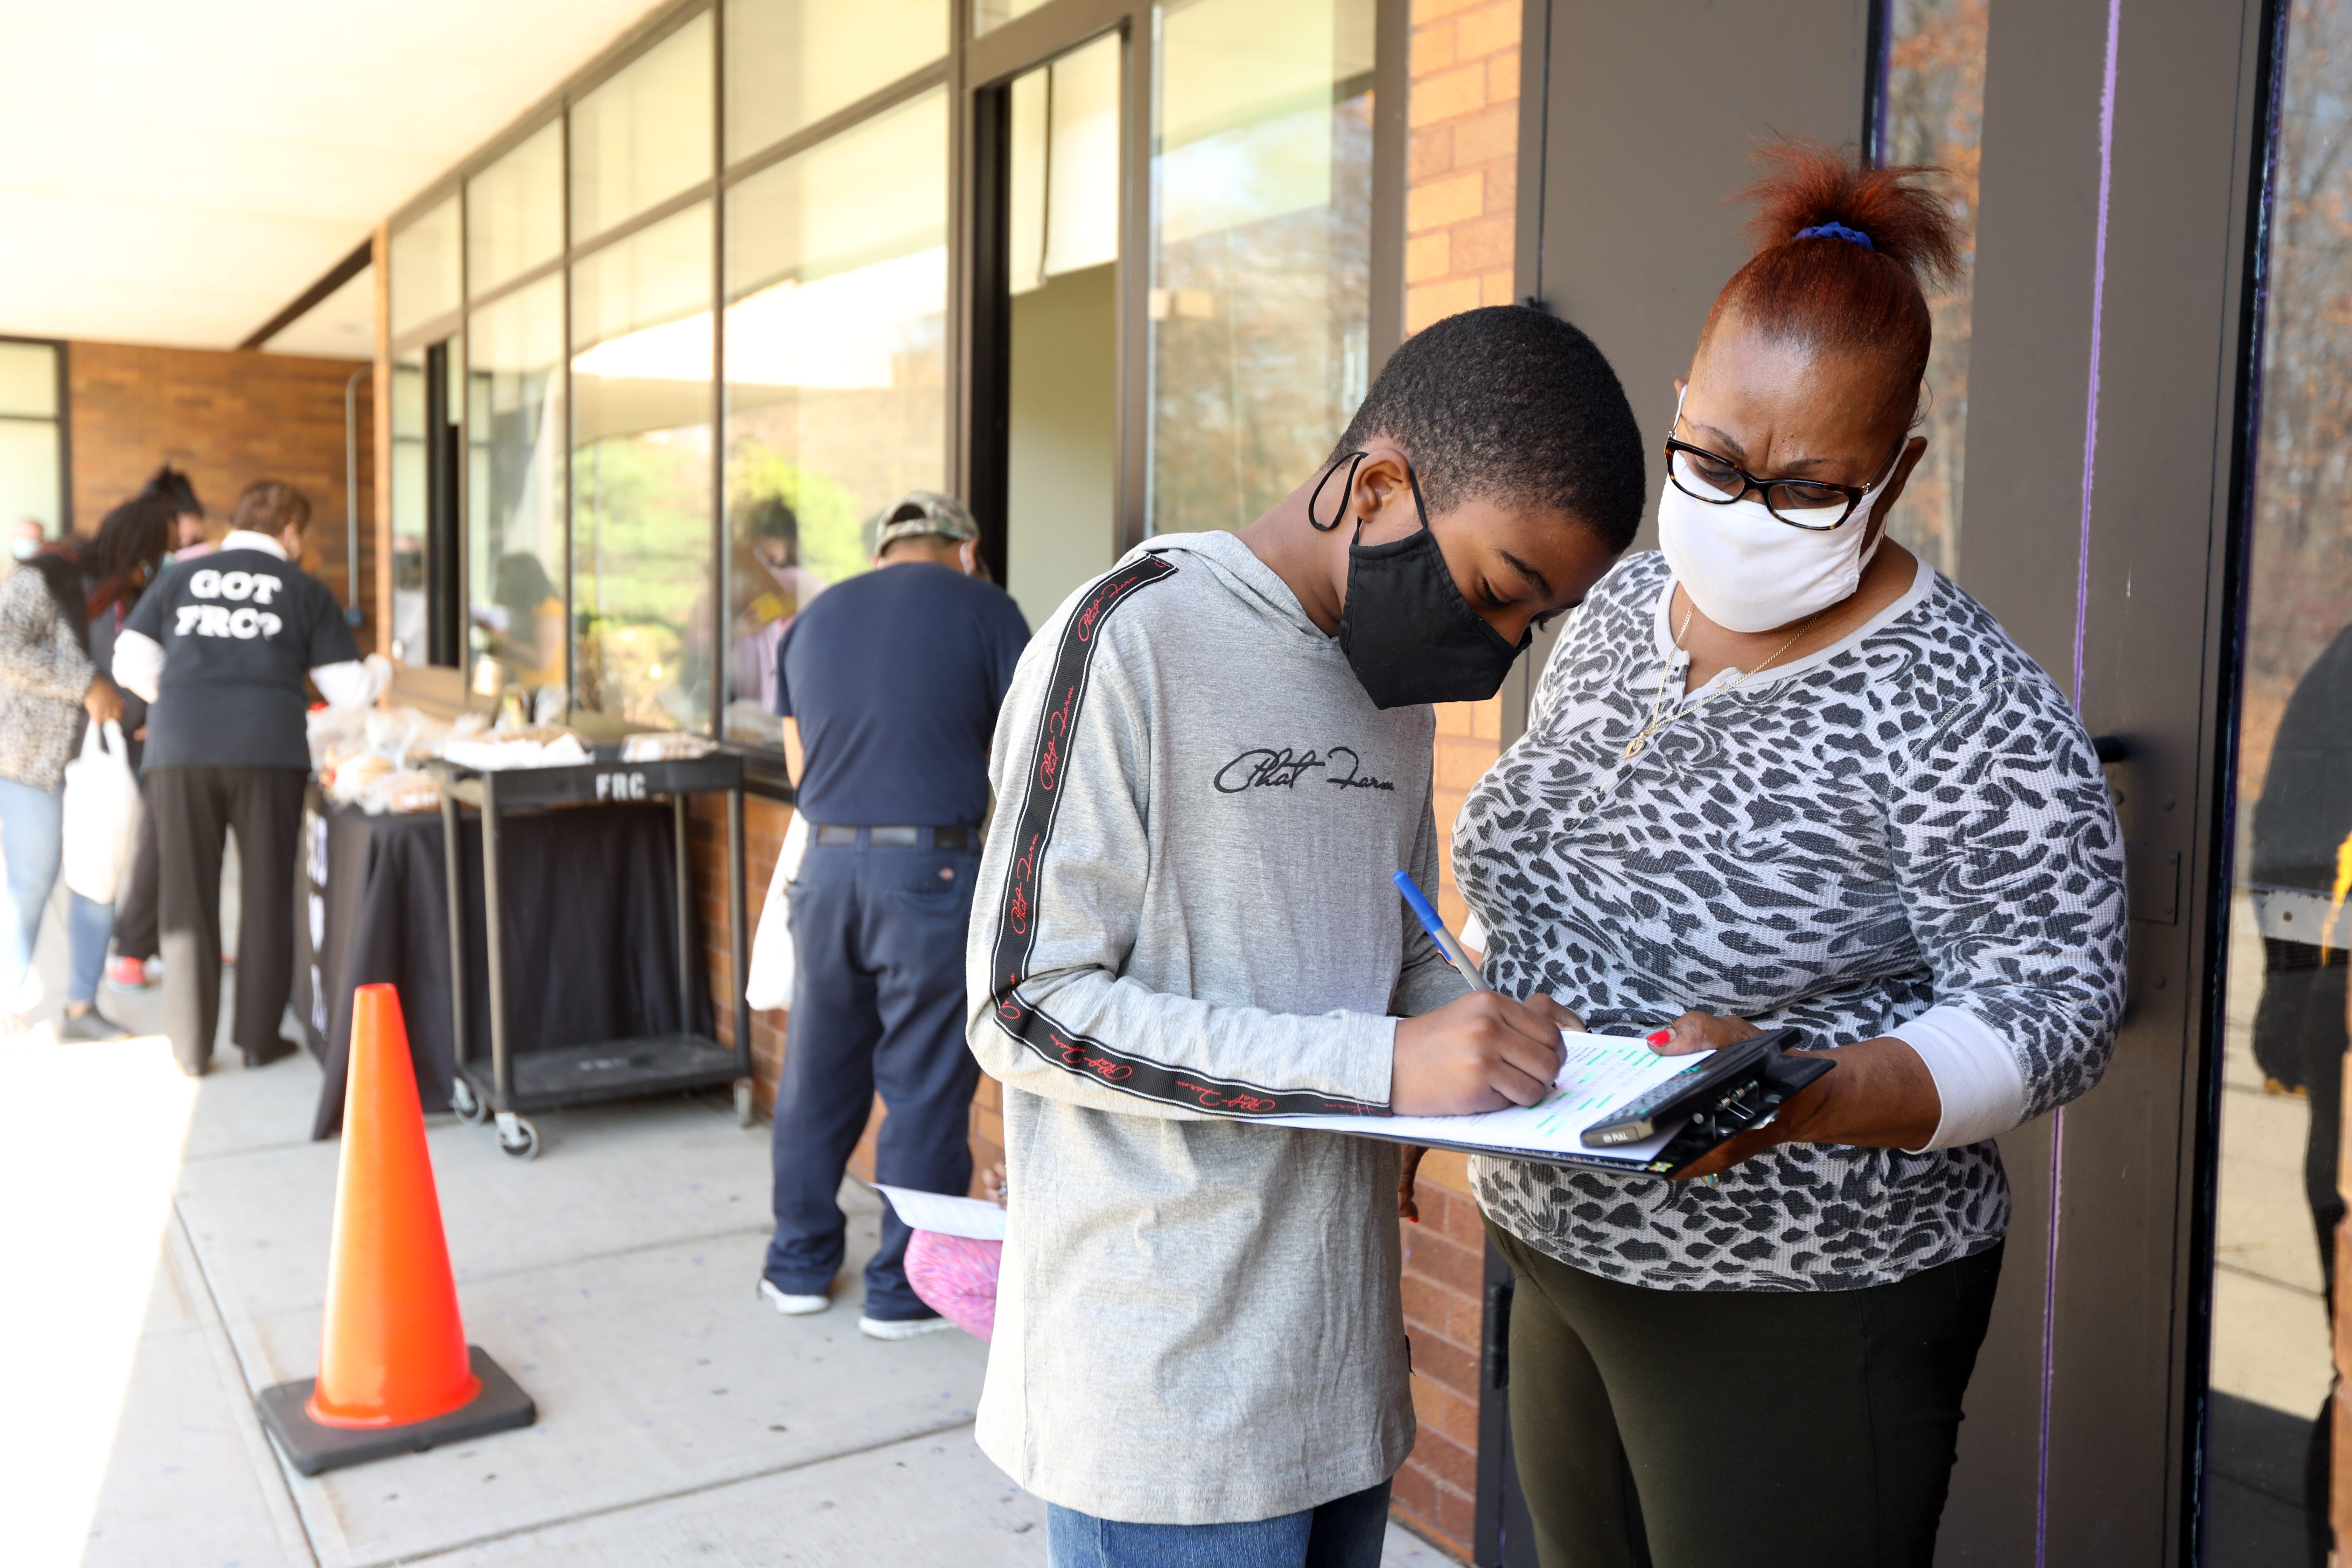 Seventh-grader Lensky Jean-Pierre, 12, and his mother, Gisele, fill out paperwork to receive a Chromebook on Nov. 10 at Chestnut Ridge Middle School in New York. Jean-Pierre had been using his mother's phone for his school work and hoped the Chromebook would make it easier to do his work.